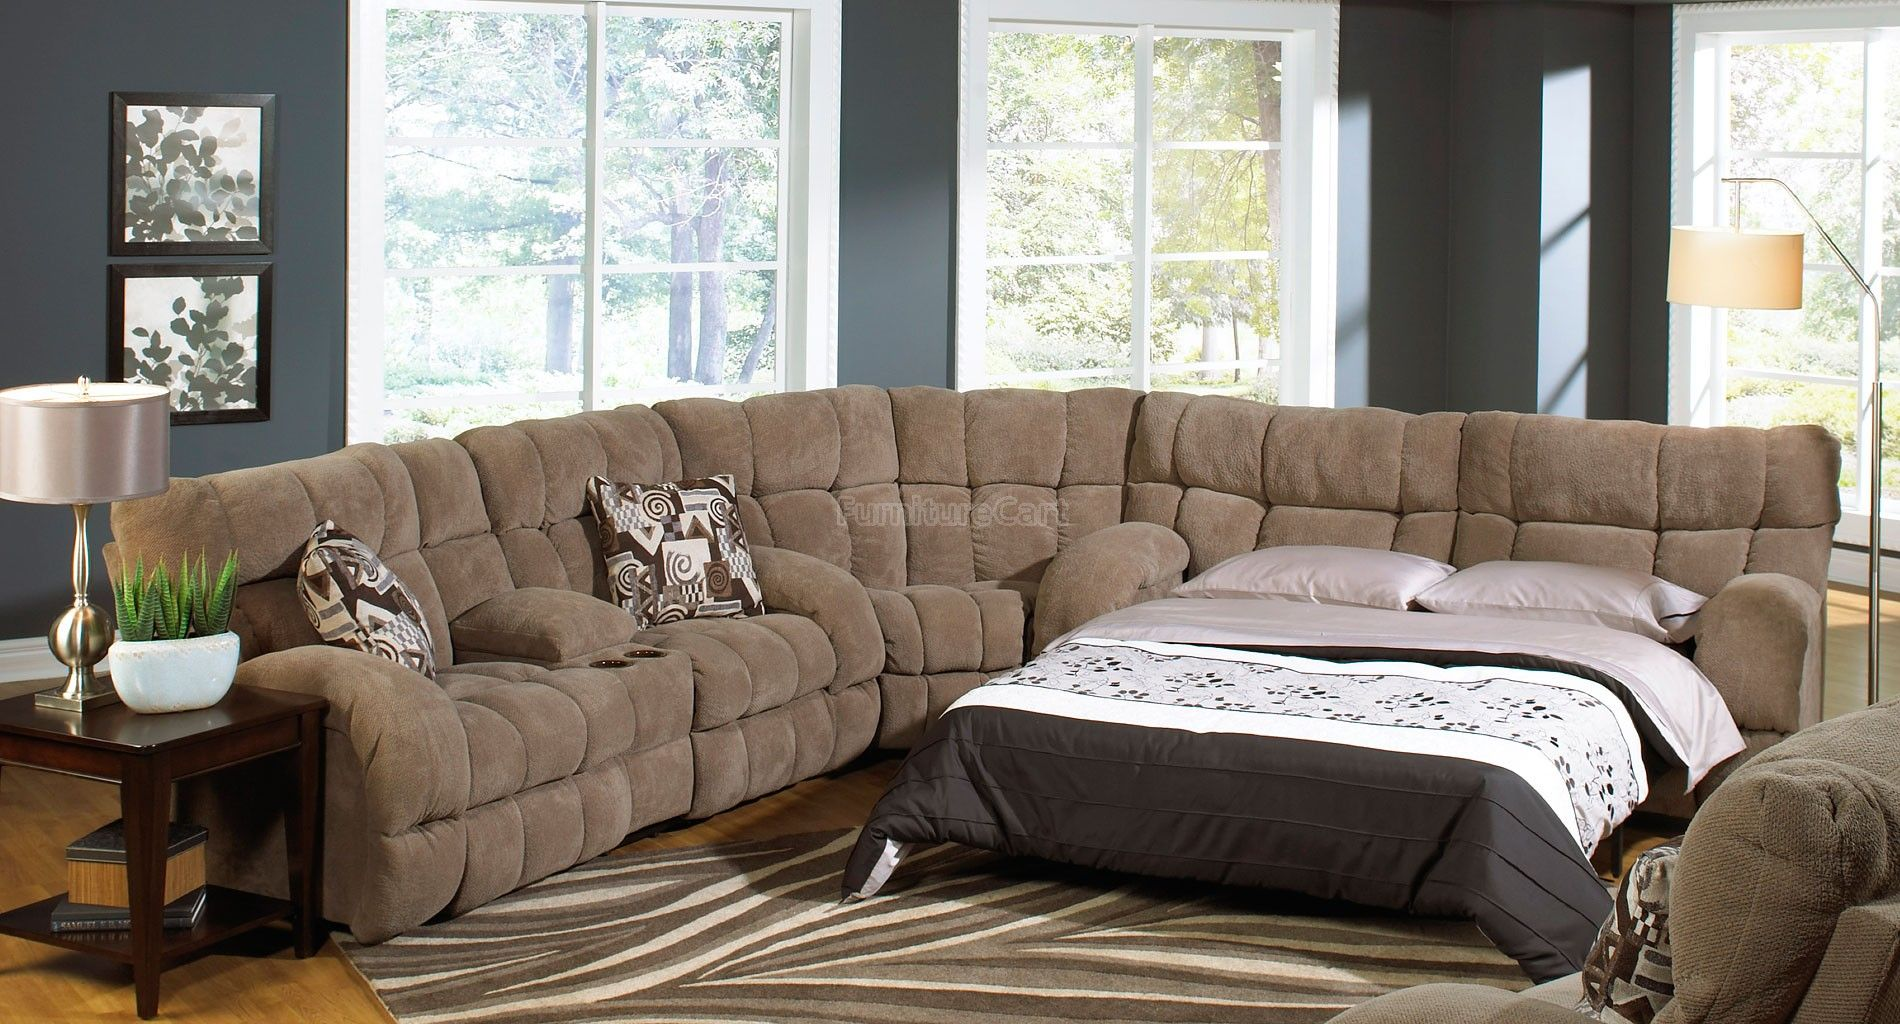 Siesta Reclining Sectional W Sleeper Porcini Sectional Sleeper Sofa Comfortable Sectional Sofa Sectional Sofa With Chaise